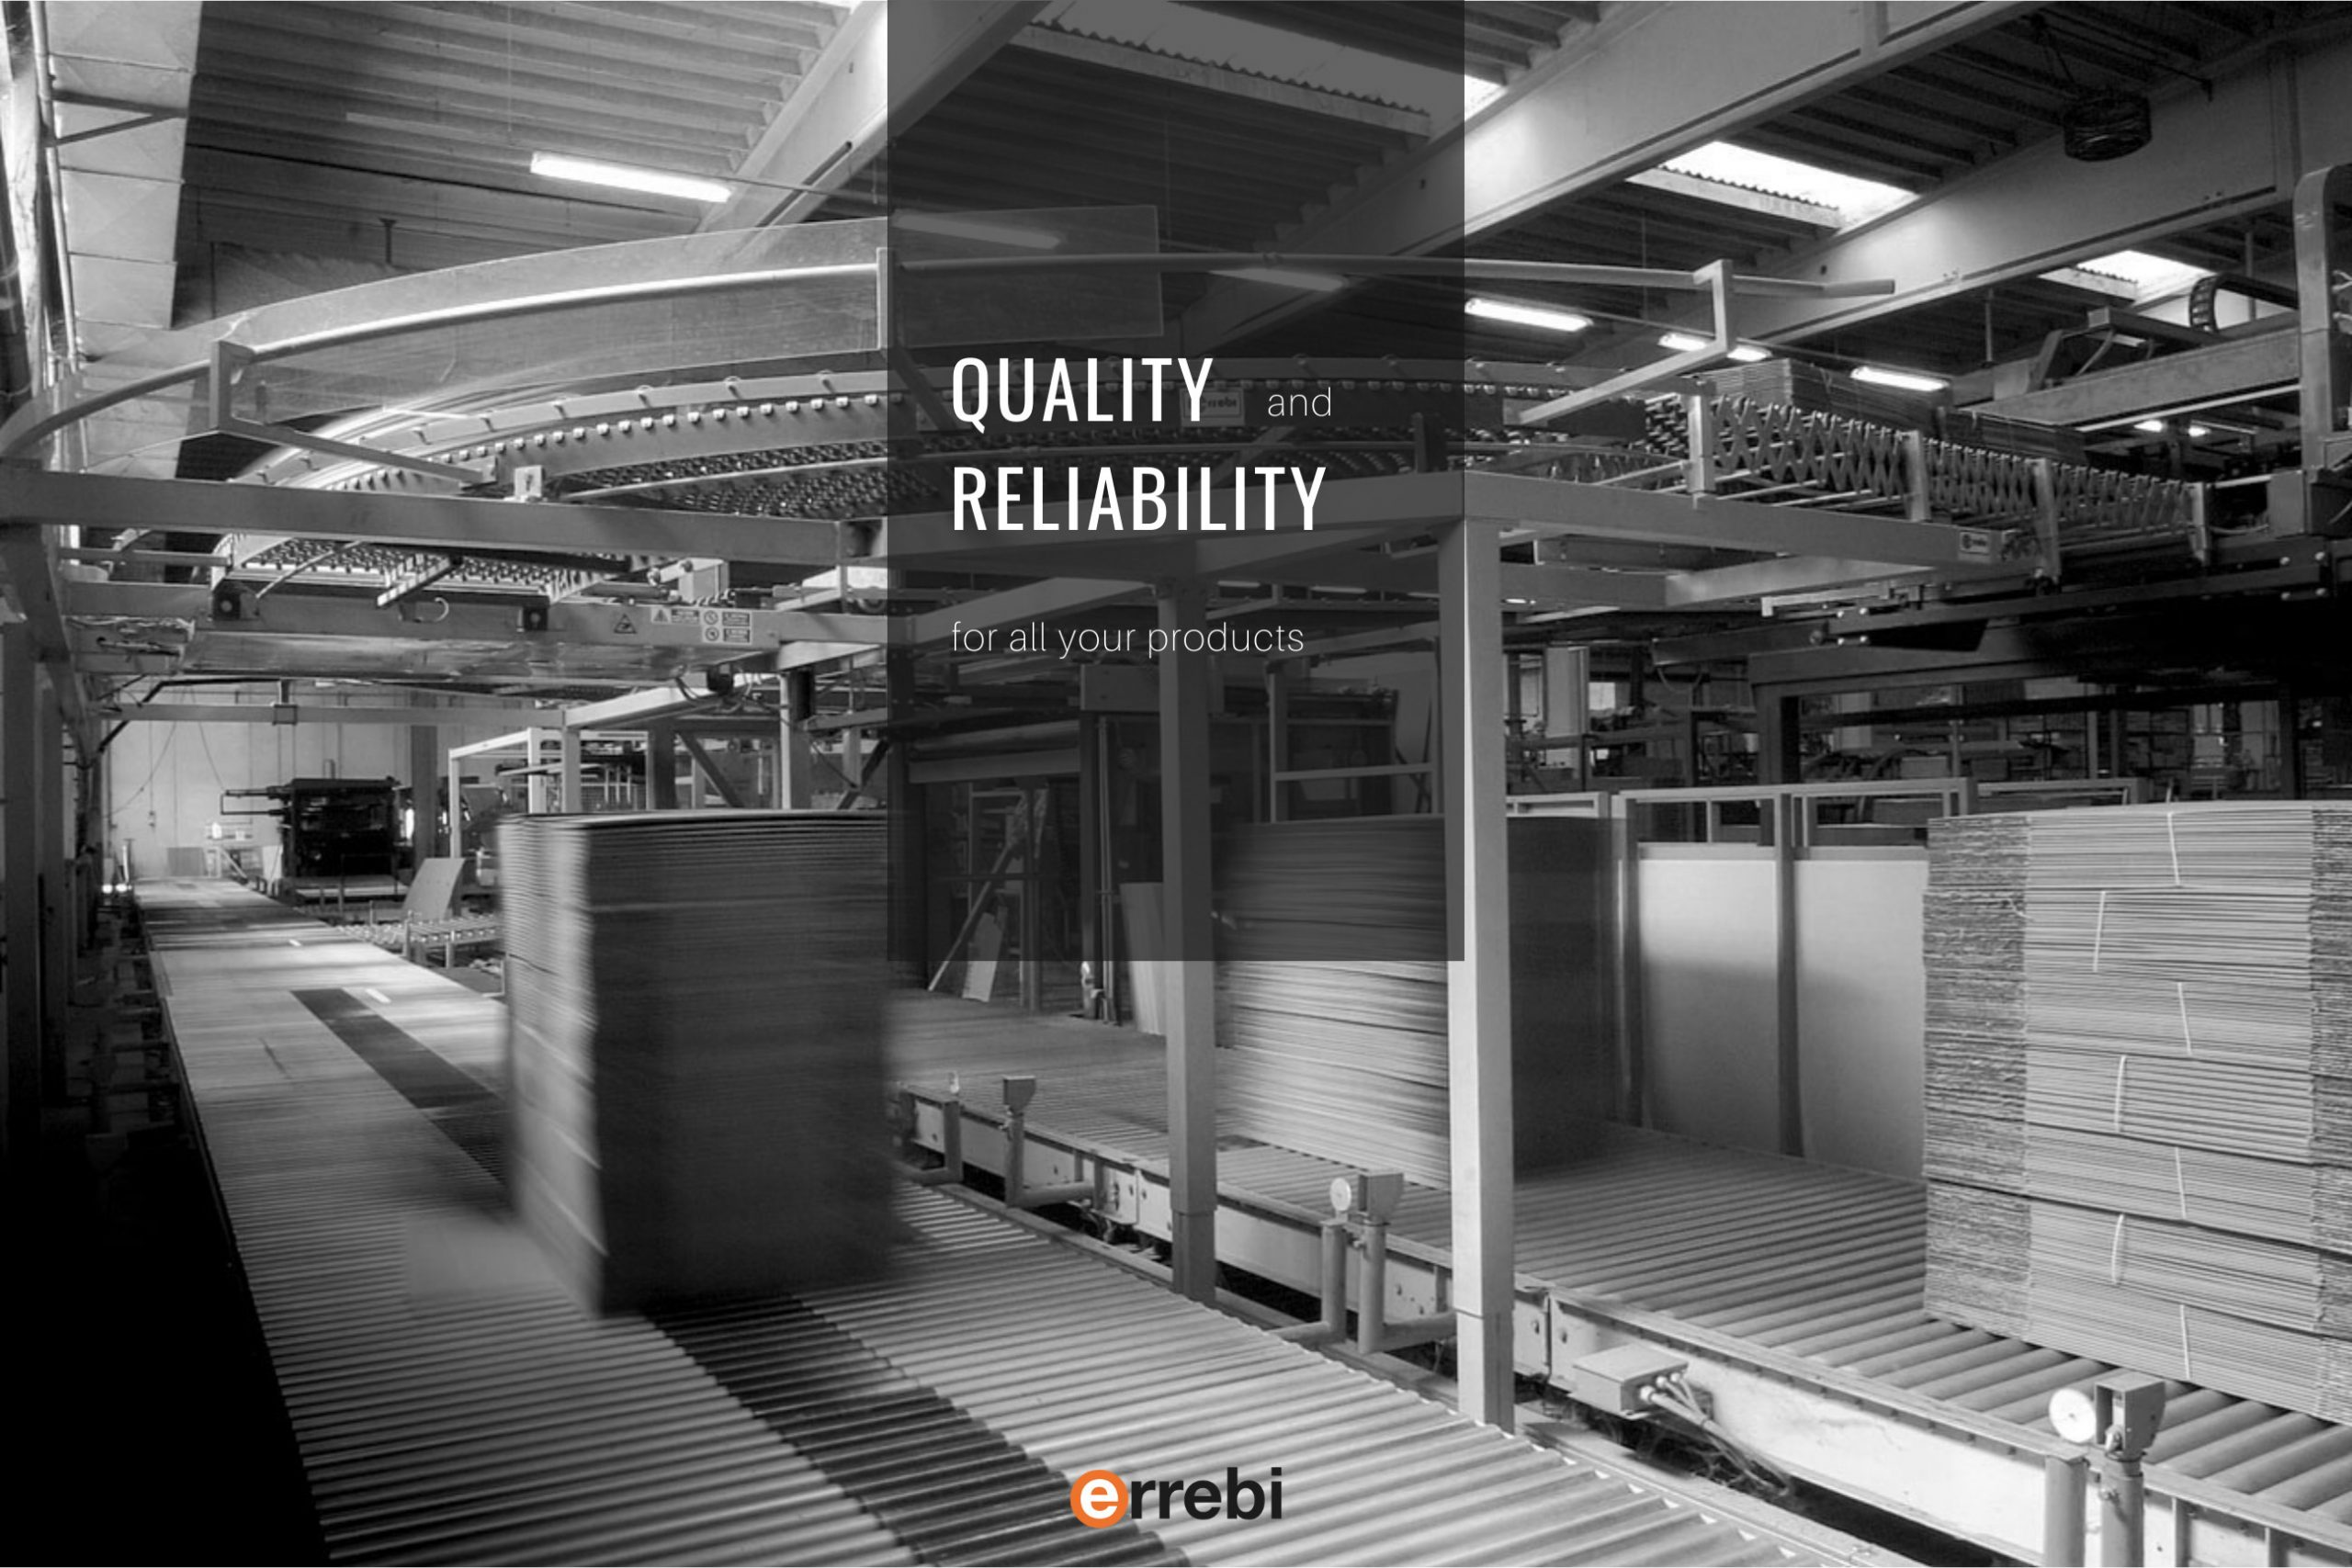 Quality and reliability